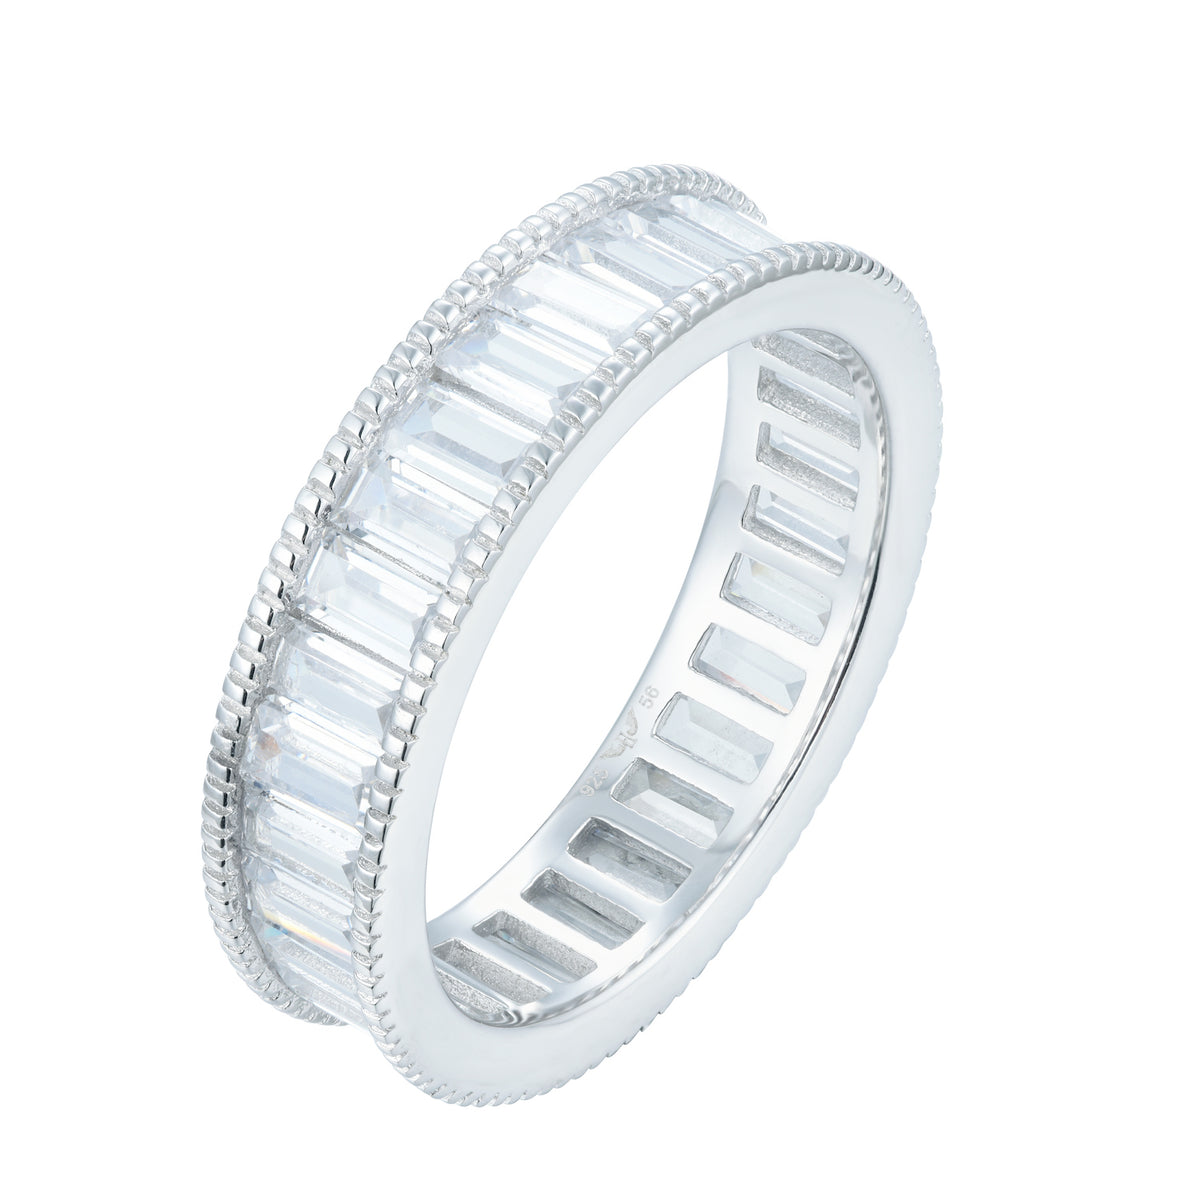 Fortuna | La Spezia Ring | 925 Silver | White CZ | White Rhodium Plated